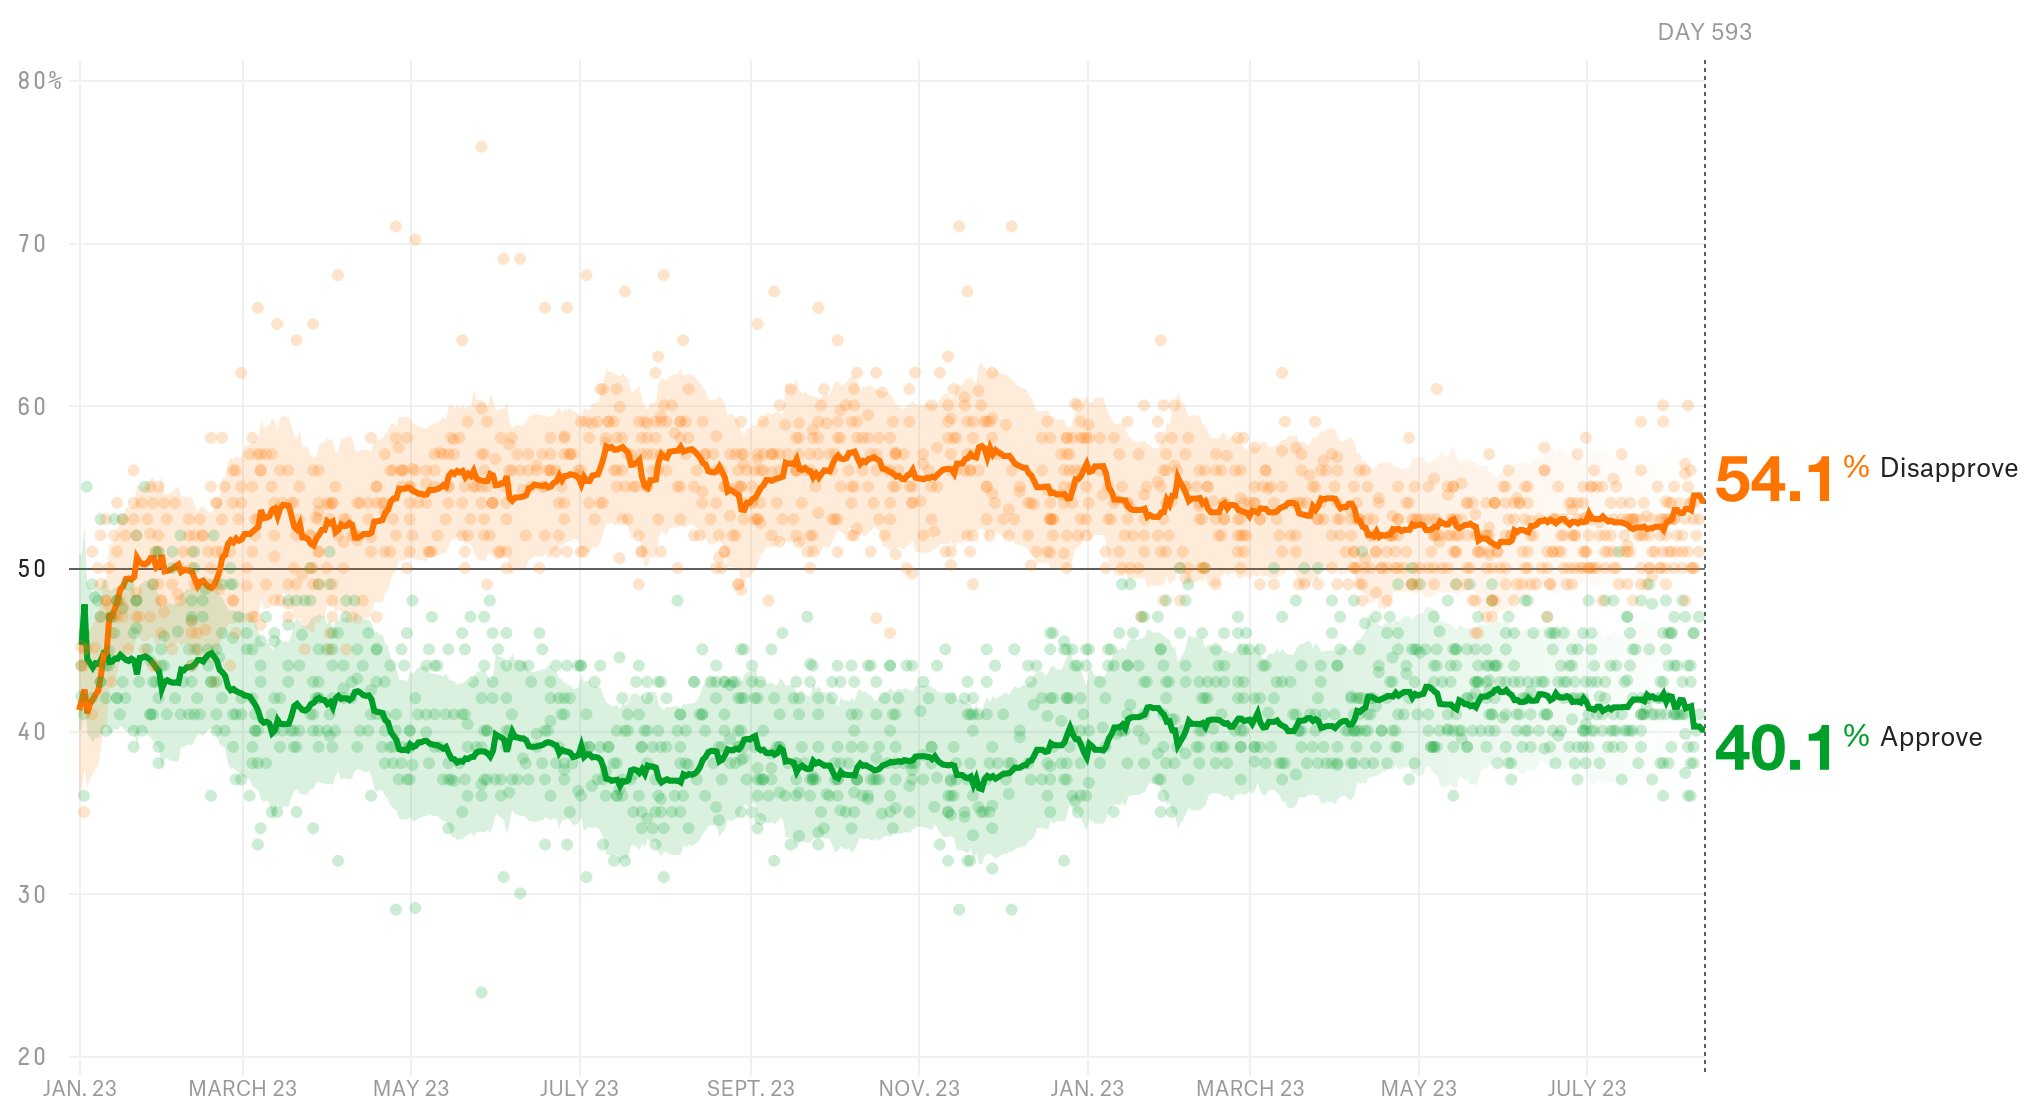 President Donald Trump has a 40.1% approval rating. https://t.co/gFuJdJjGOg https://t.co/E09vhF88WK